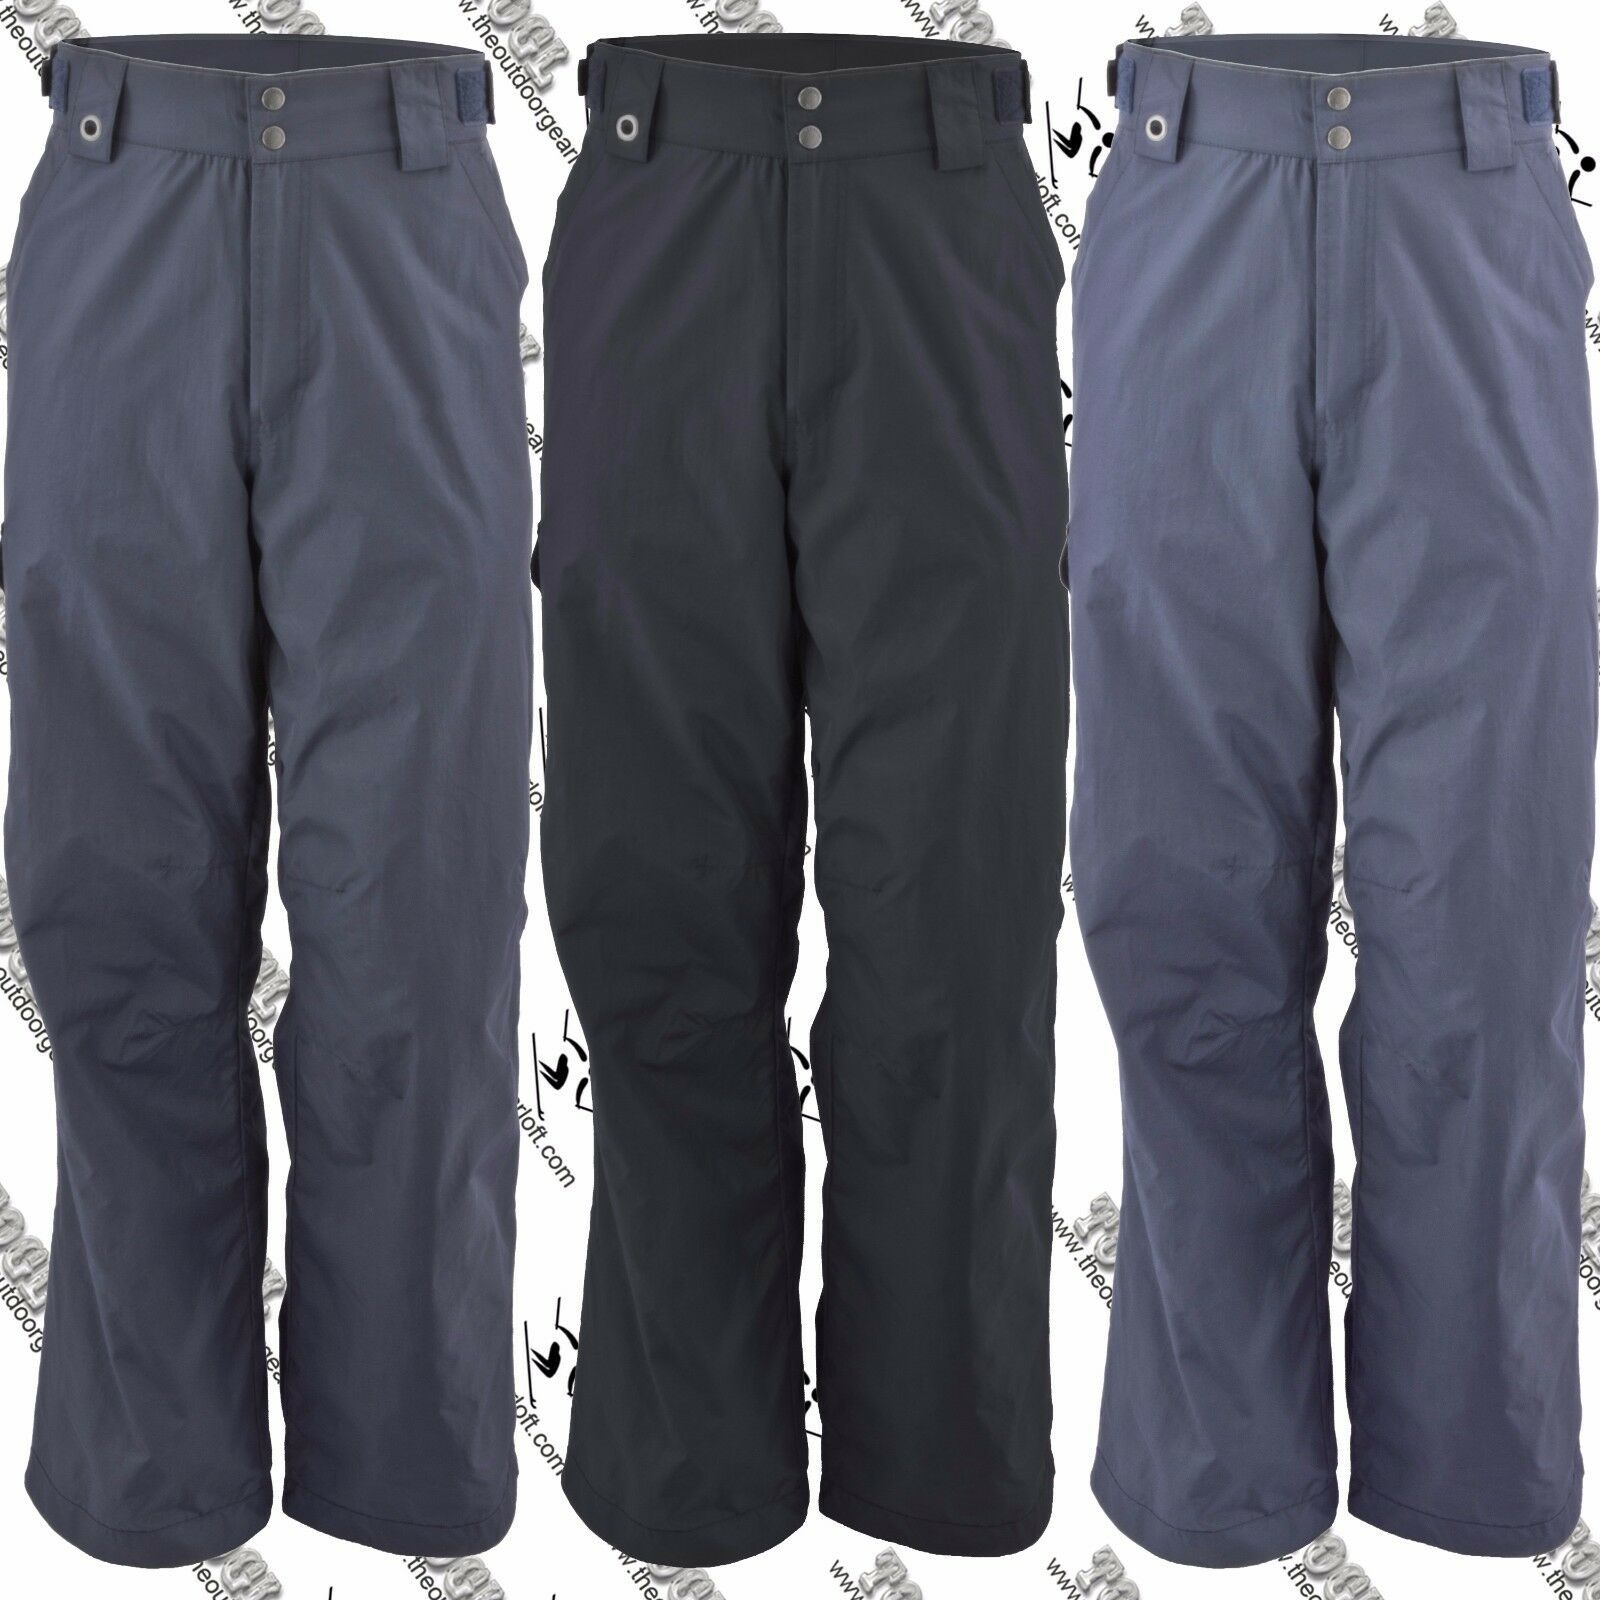 WHITE SIERRA V9788M MENS BILKO SKI SNOWBOARD SNOW SHELL  PANT S-XXL 30,32 INSEAM  outlet sale